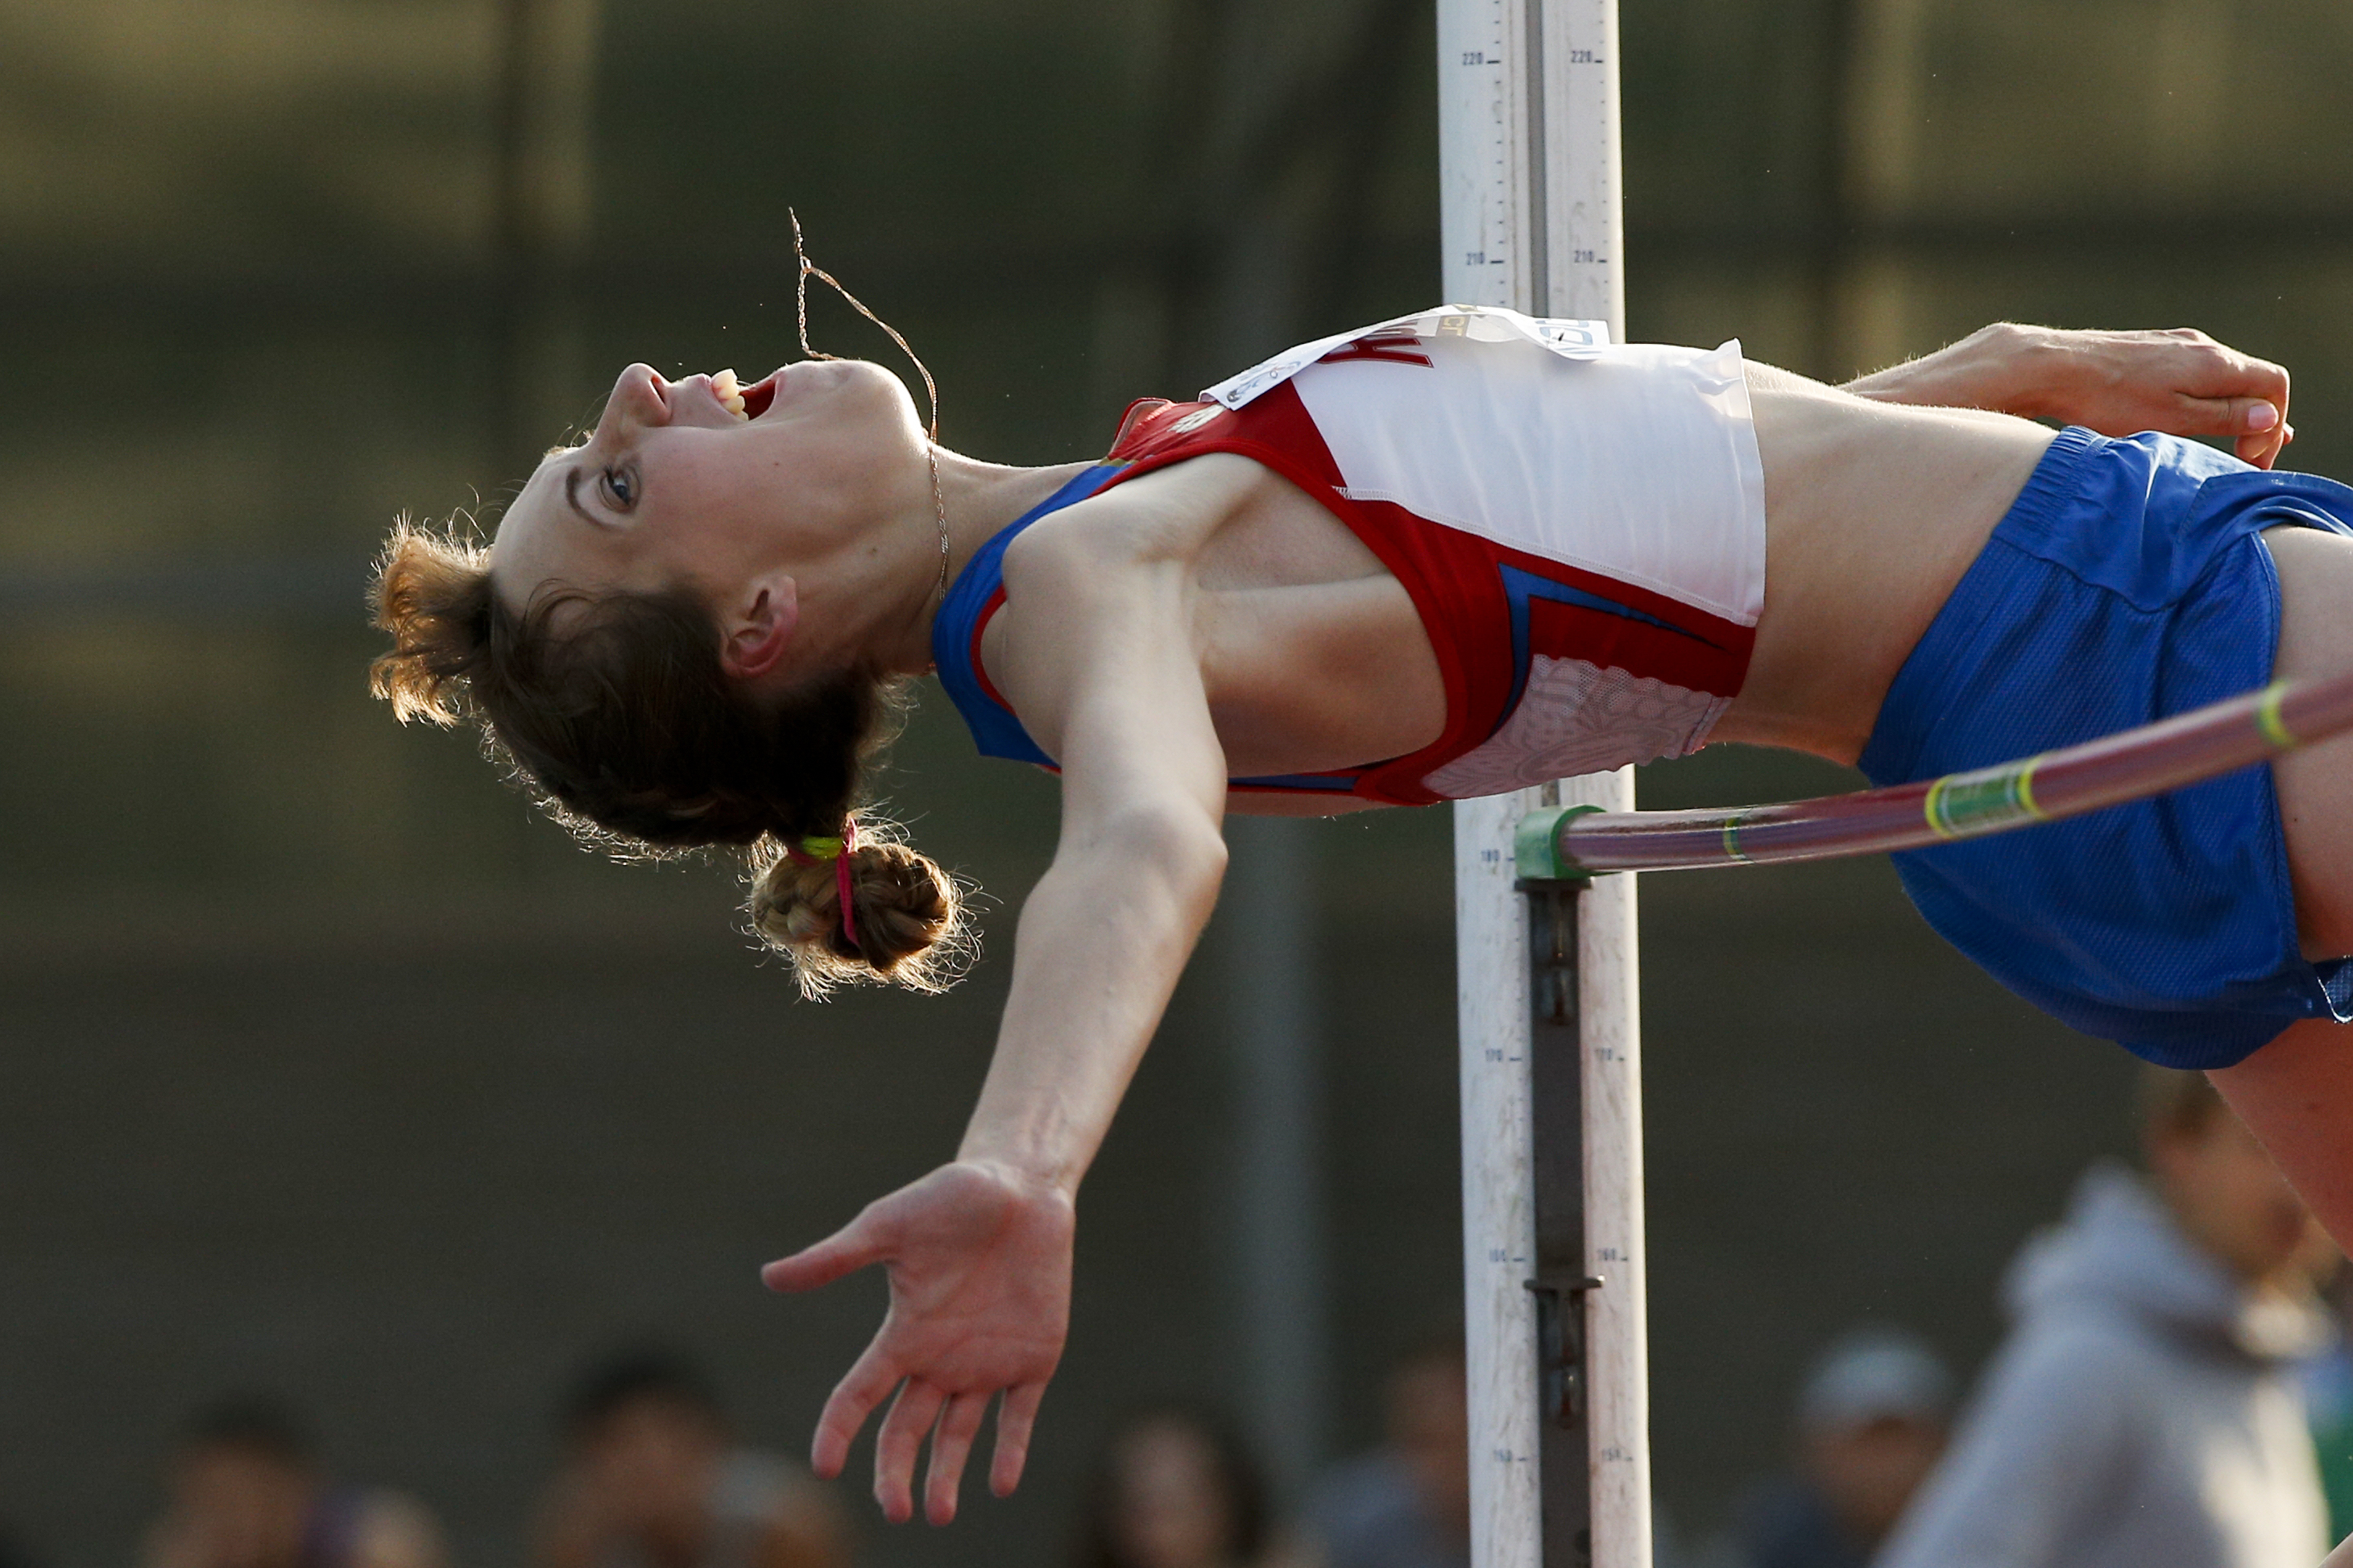 Natalya Aksyonova makes an attempt in the women's high jump during the Russian Stars 2016 track and field competitions in Moscow, Russia, Thursday, July 28, 2016. Aksyonova is among the more than 100 athletes who have been barred from competing in the Rio